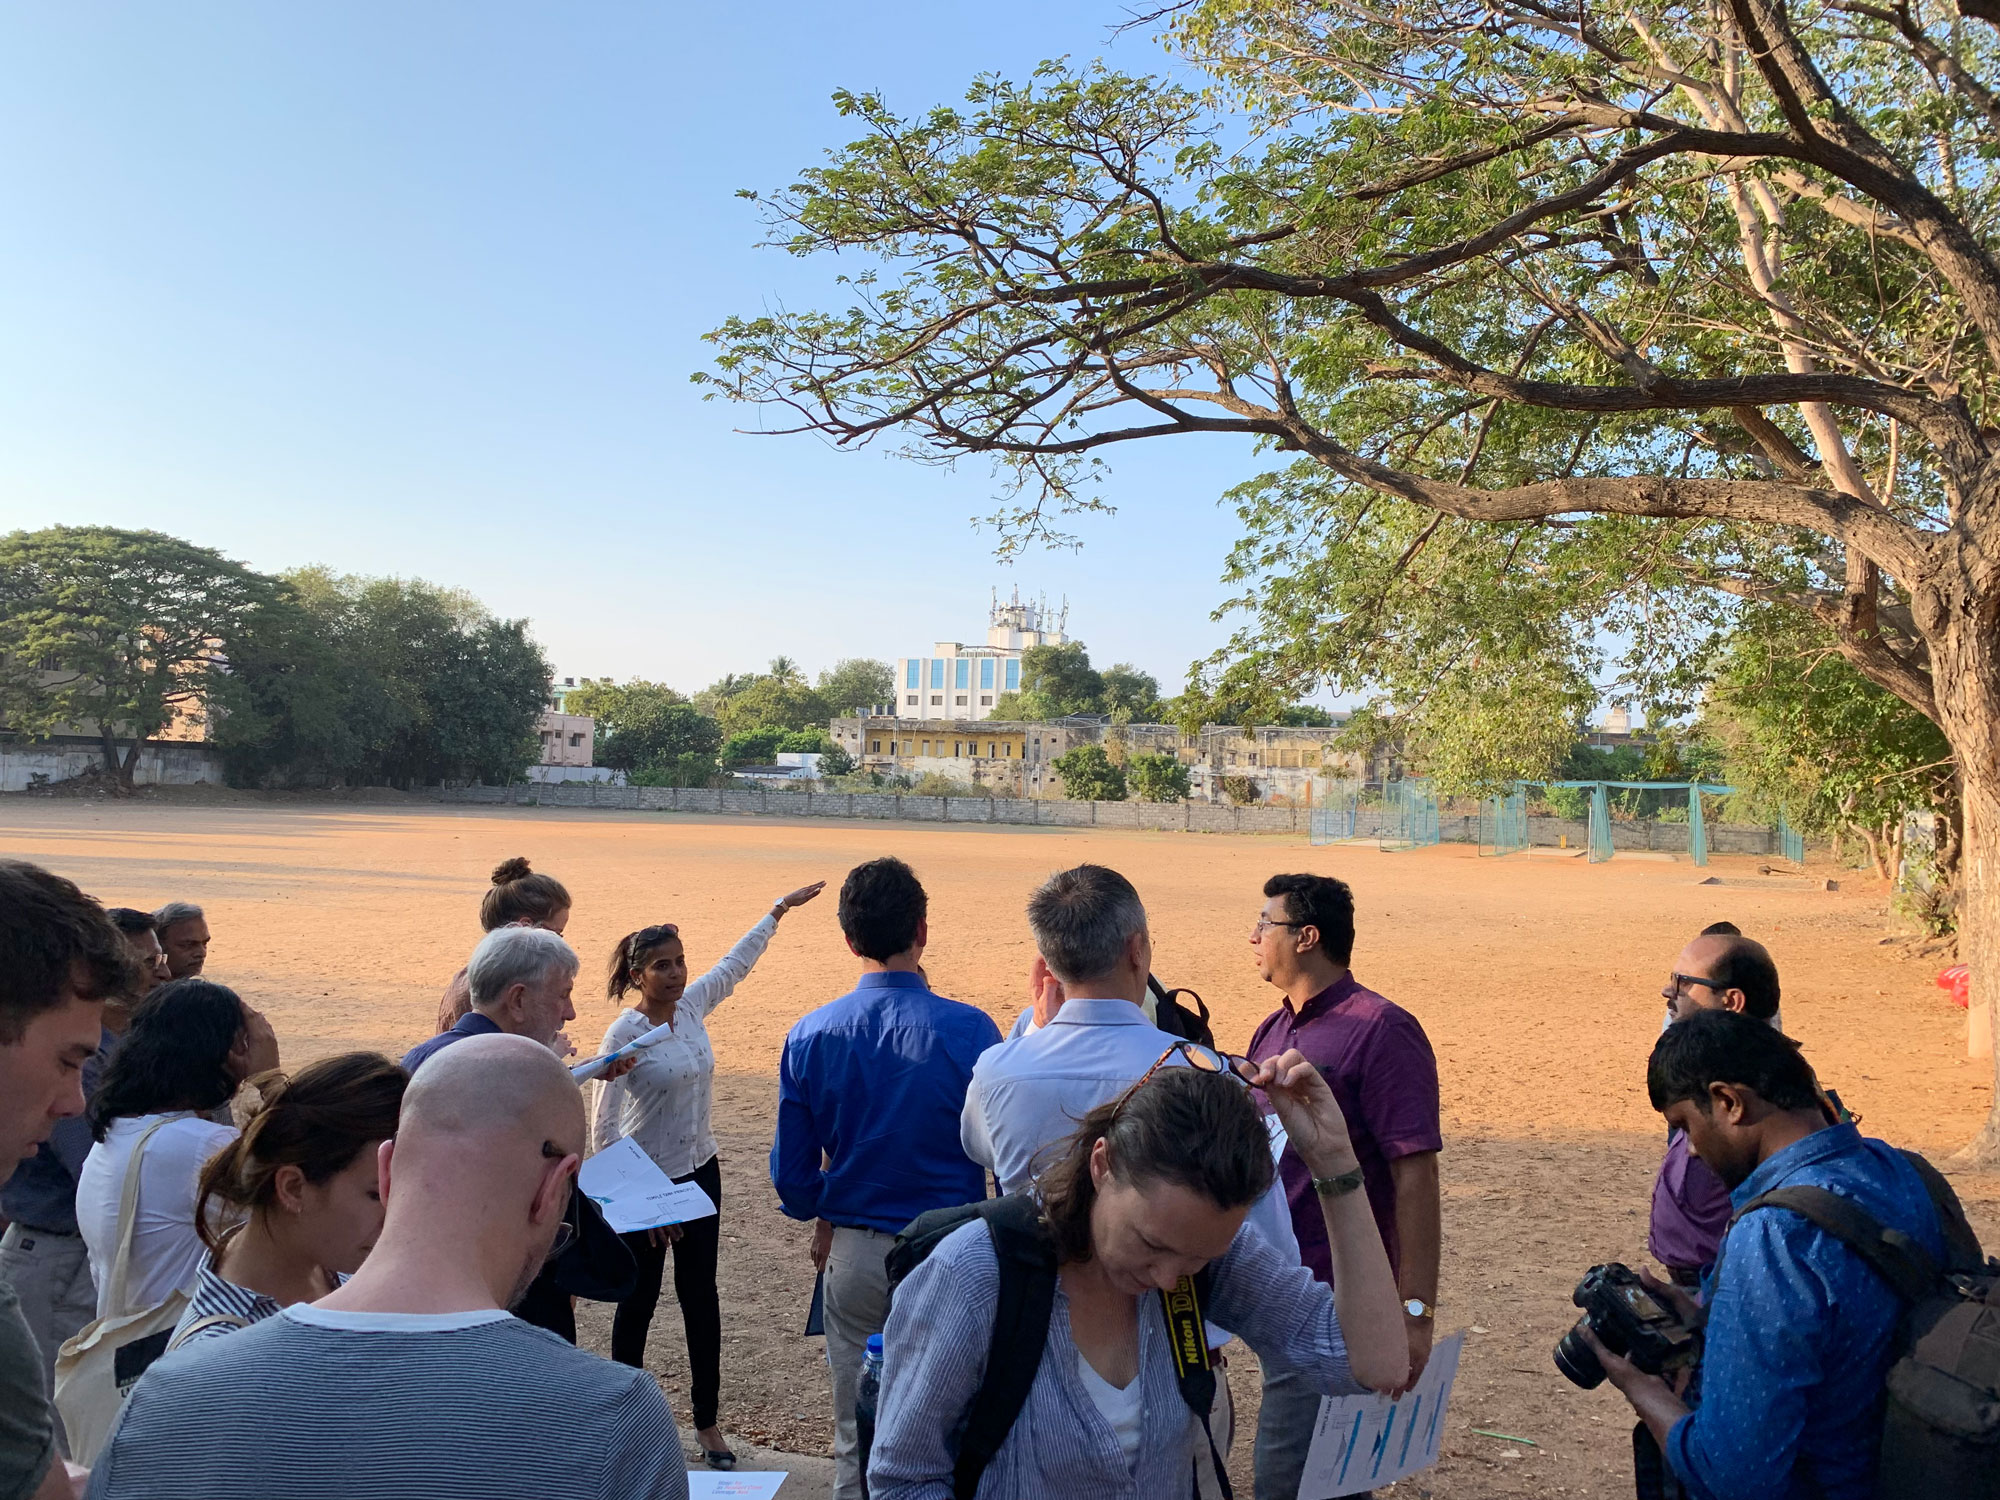 Participants at the P.S. Senior Secondary School, Mylapore ©Ooze